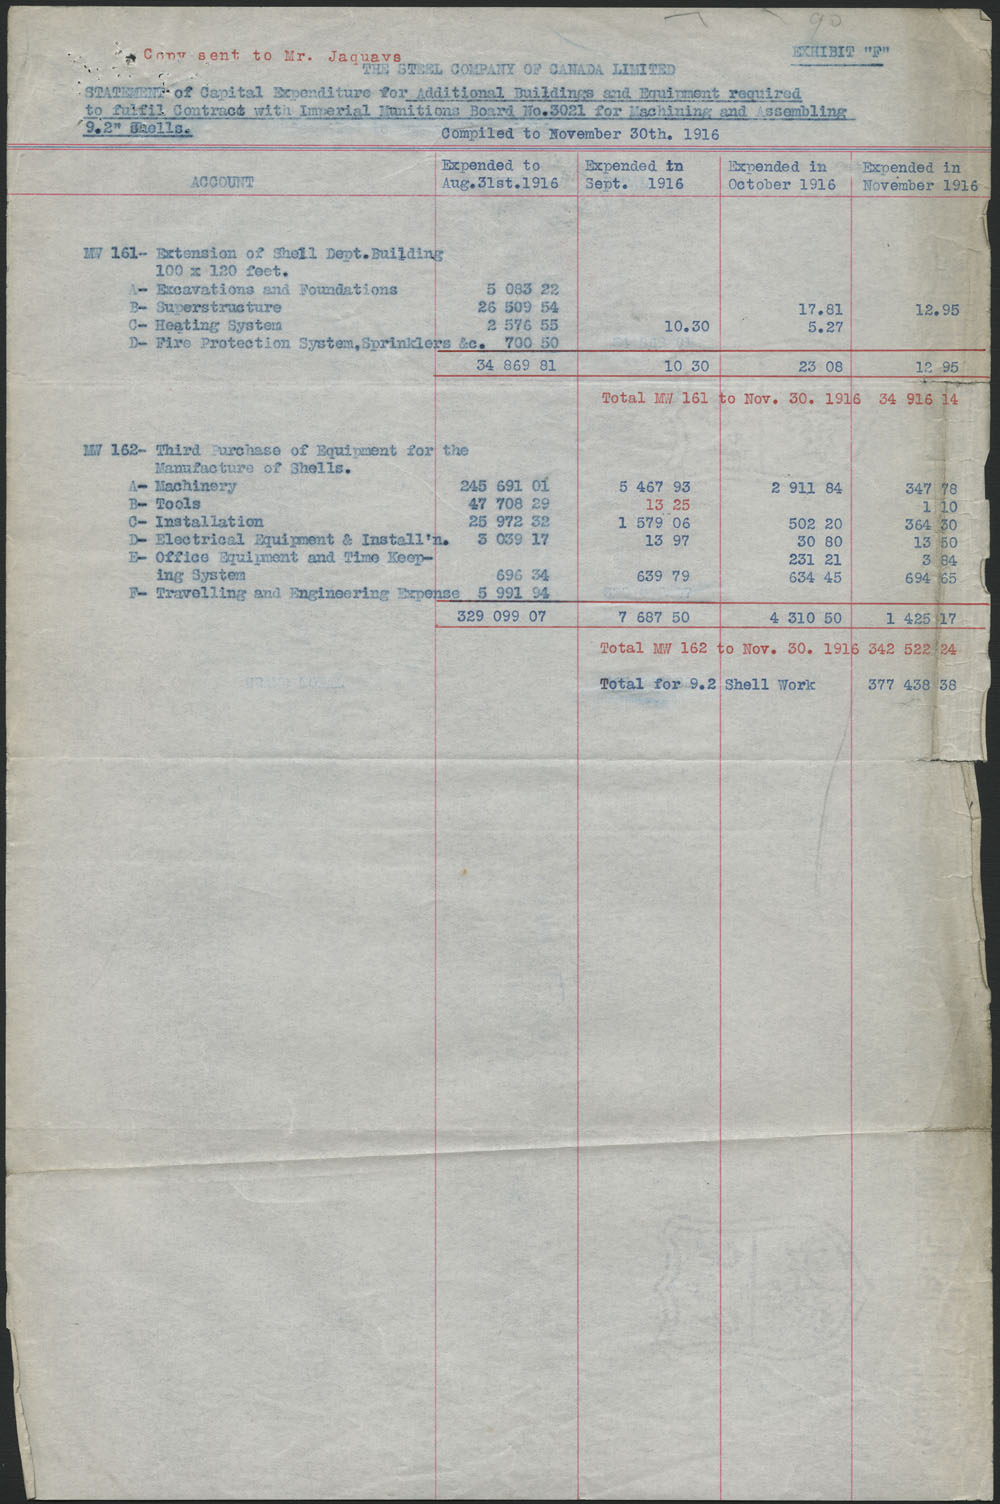 Table listing, in blue and red text, Stelco's capital expenditures for the construction of new plants and the acquisition of additional equipment.